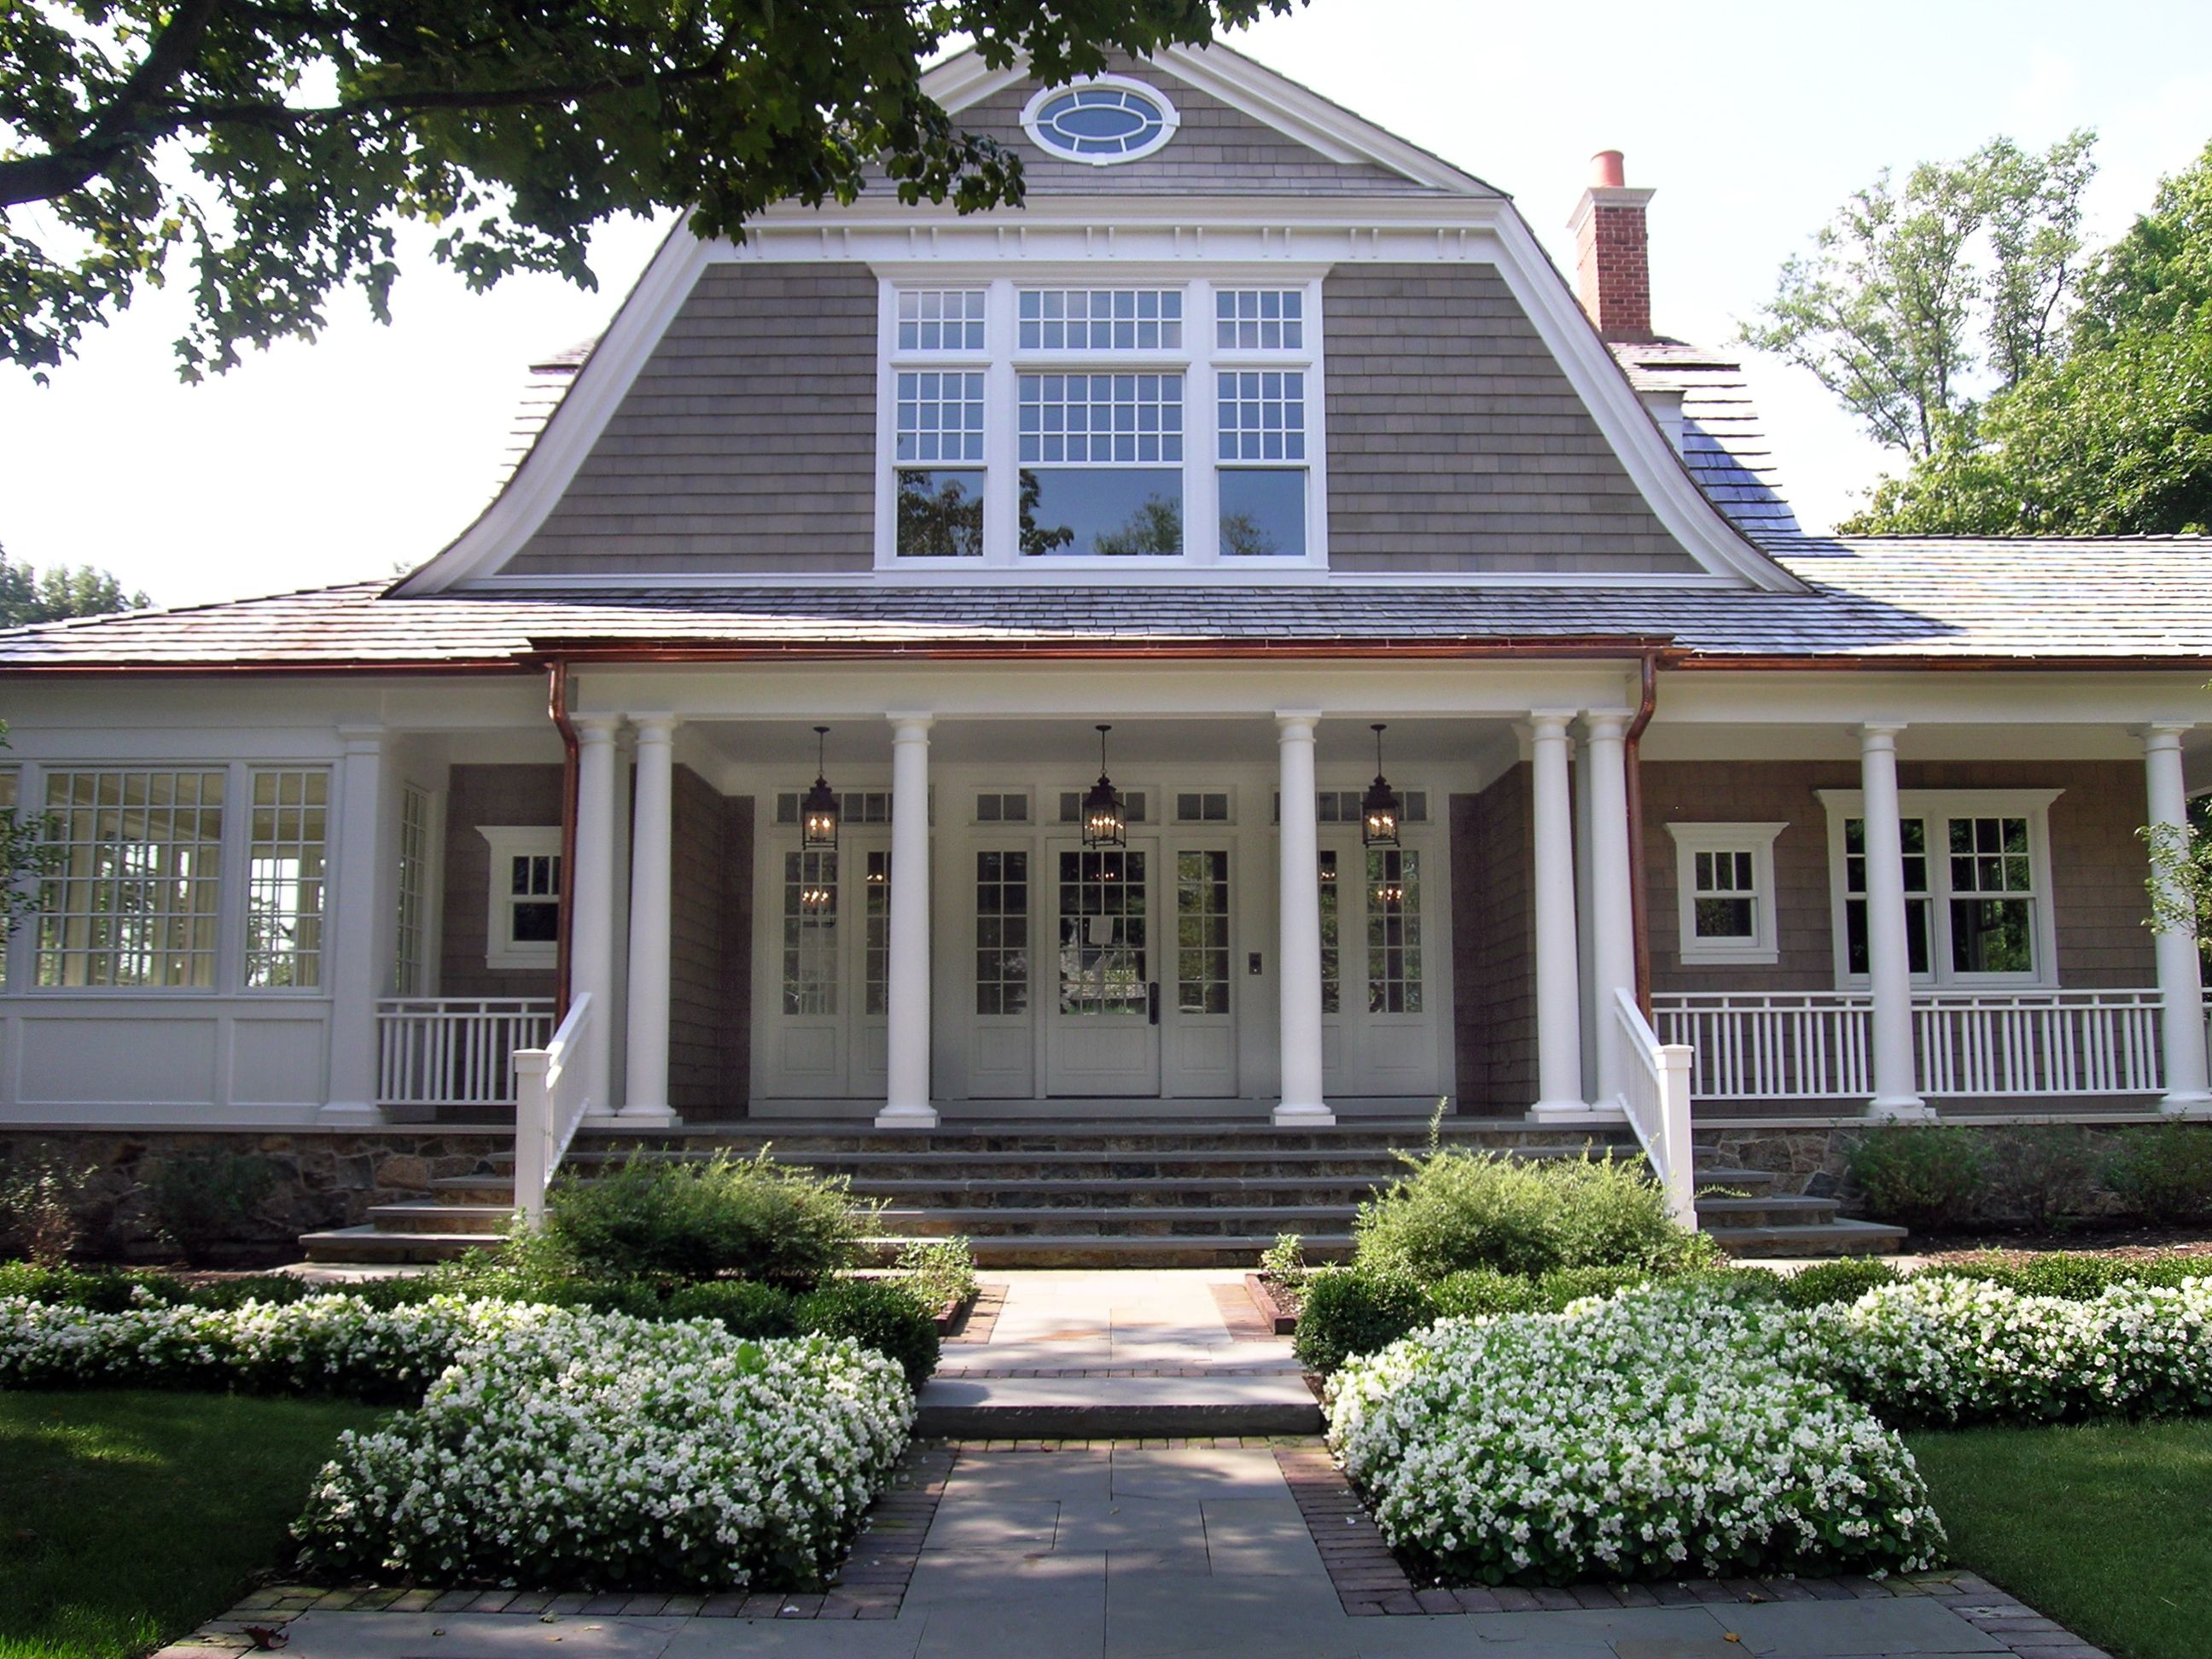 Love This House With The Gambrel Roof Line And Wrap Around Porch